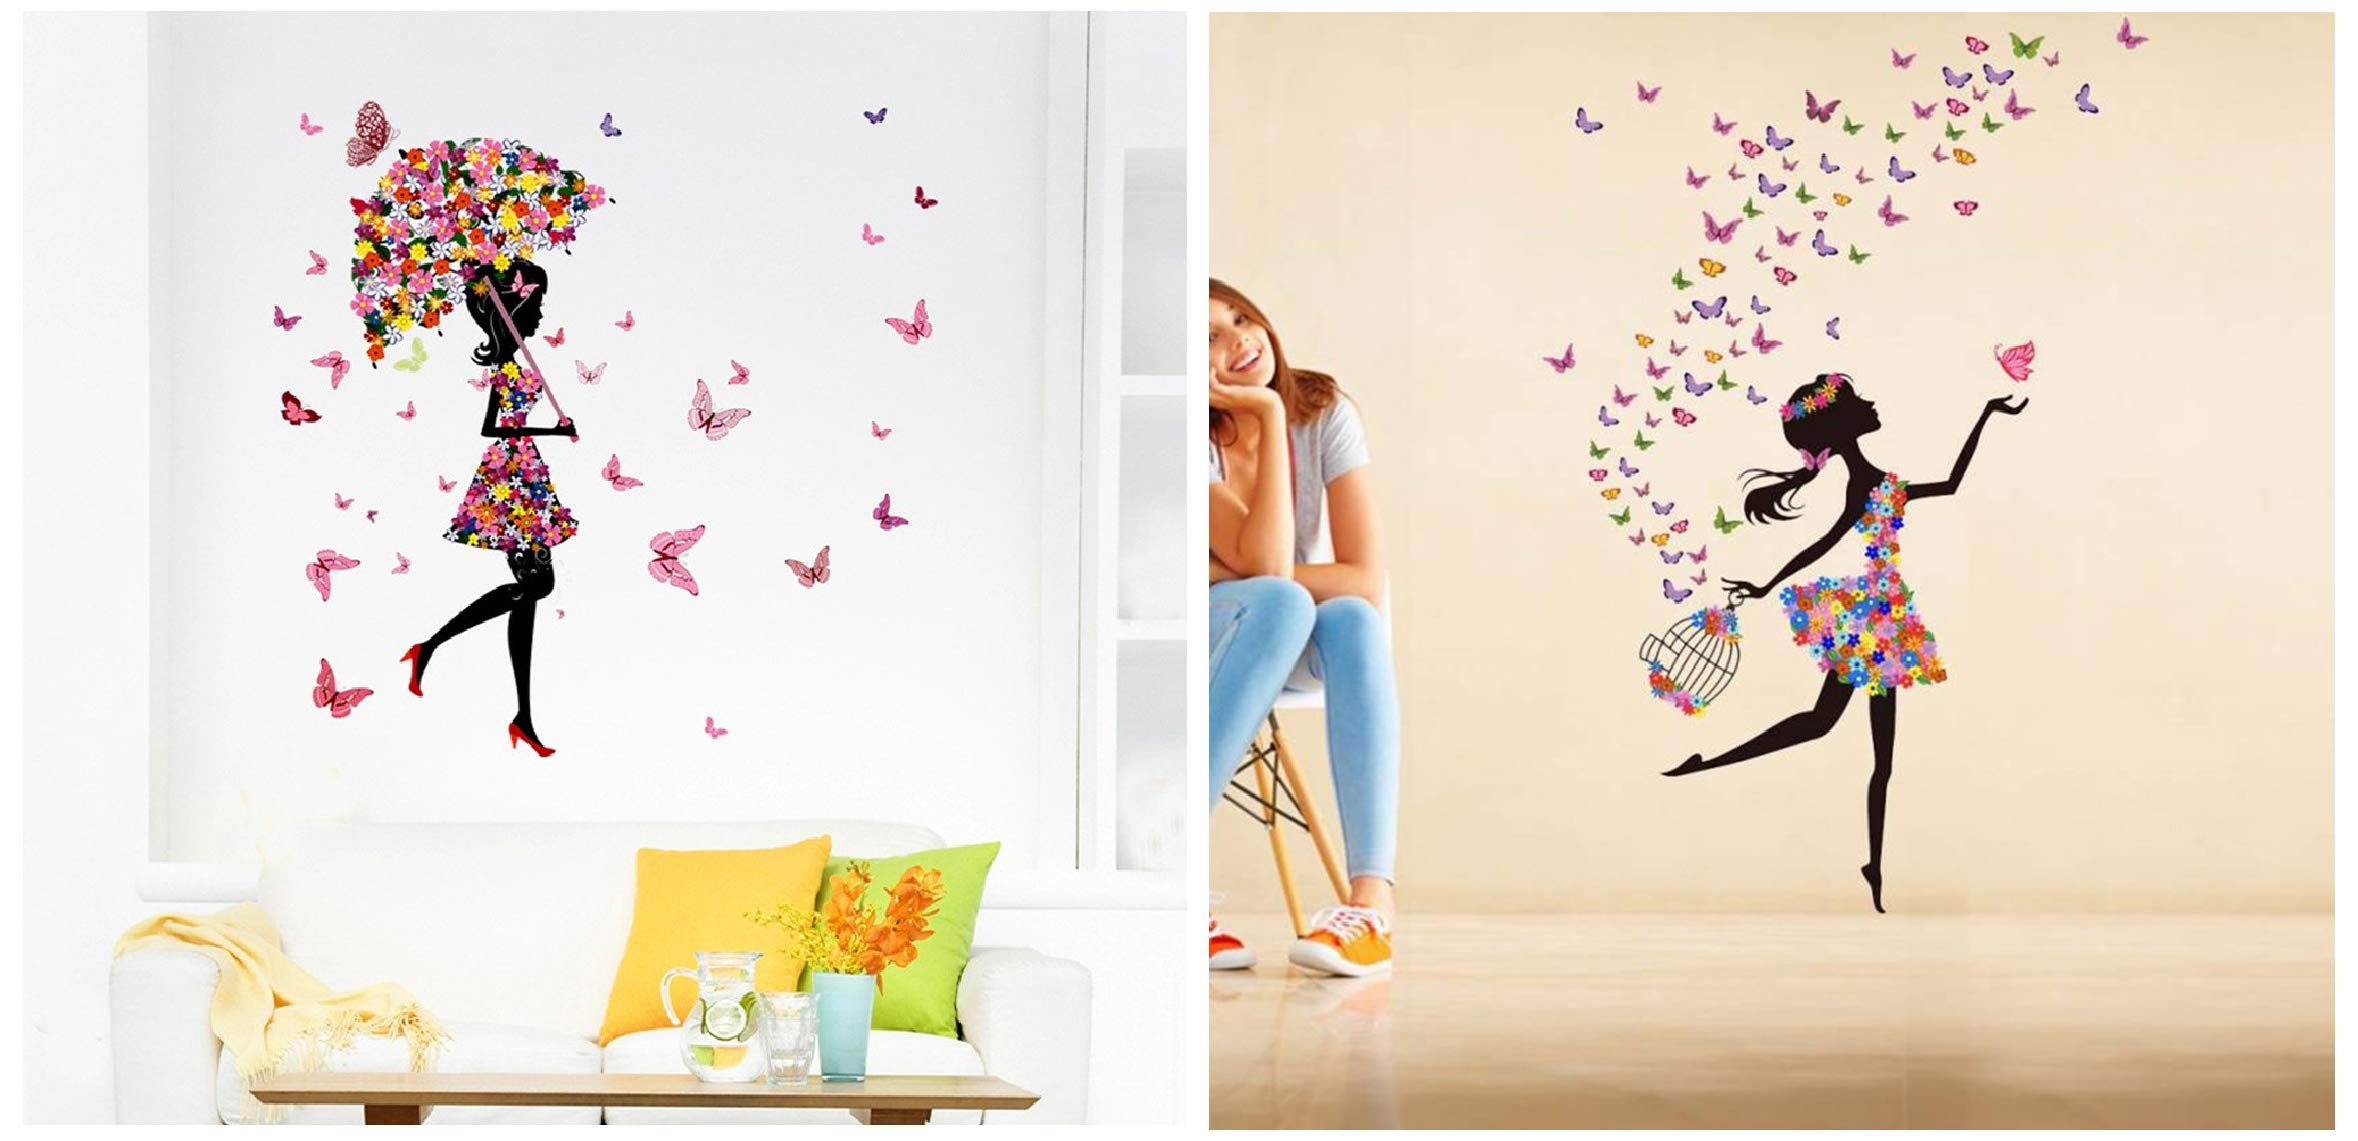 Decals Design 'Dreamy Girl with Flying Colourful Butterflies' Wall Sticker (PVC Vinyl, 60 cm x 90 cm & 'Floral Umbrella Girl and Butterflies' Wall Sticker (PVC Vinyl, 50 cm x 70 cm x 1 cm, Combo (B07W6C56GF) Amazon Price History, Amazon Price Tracker